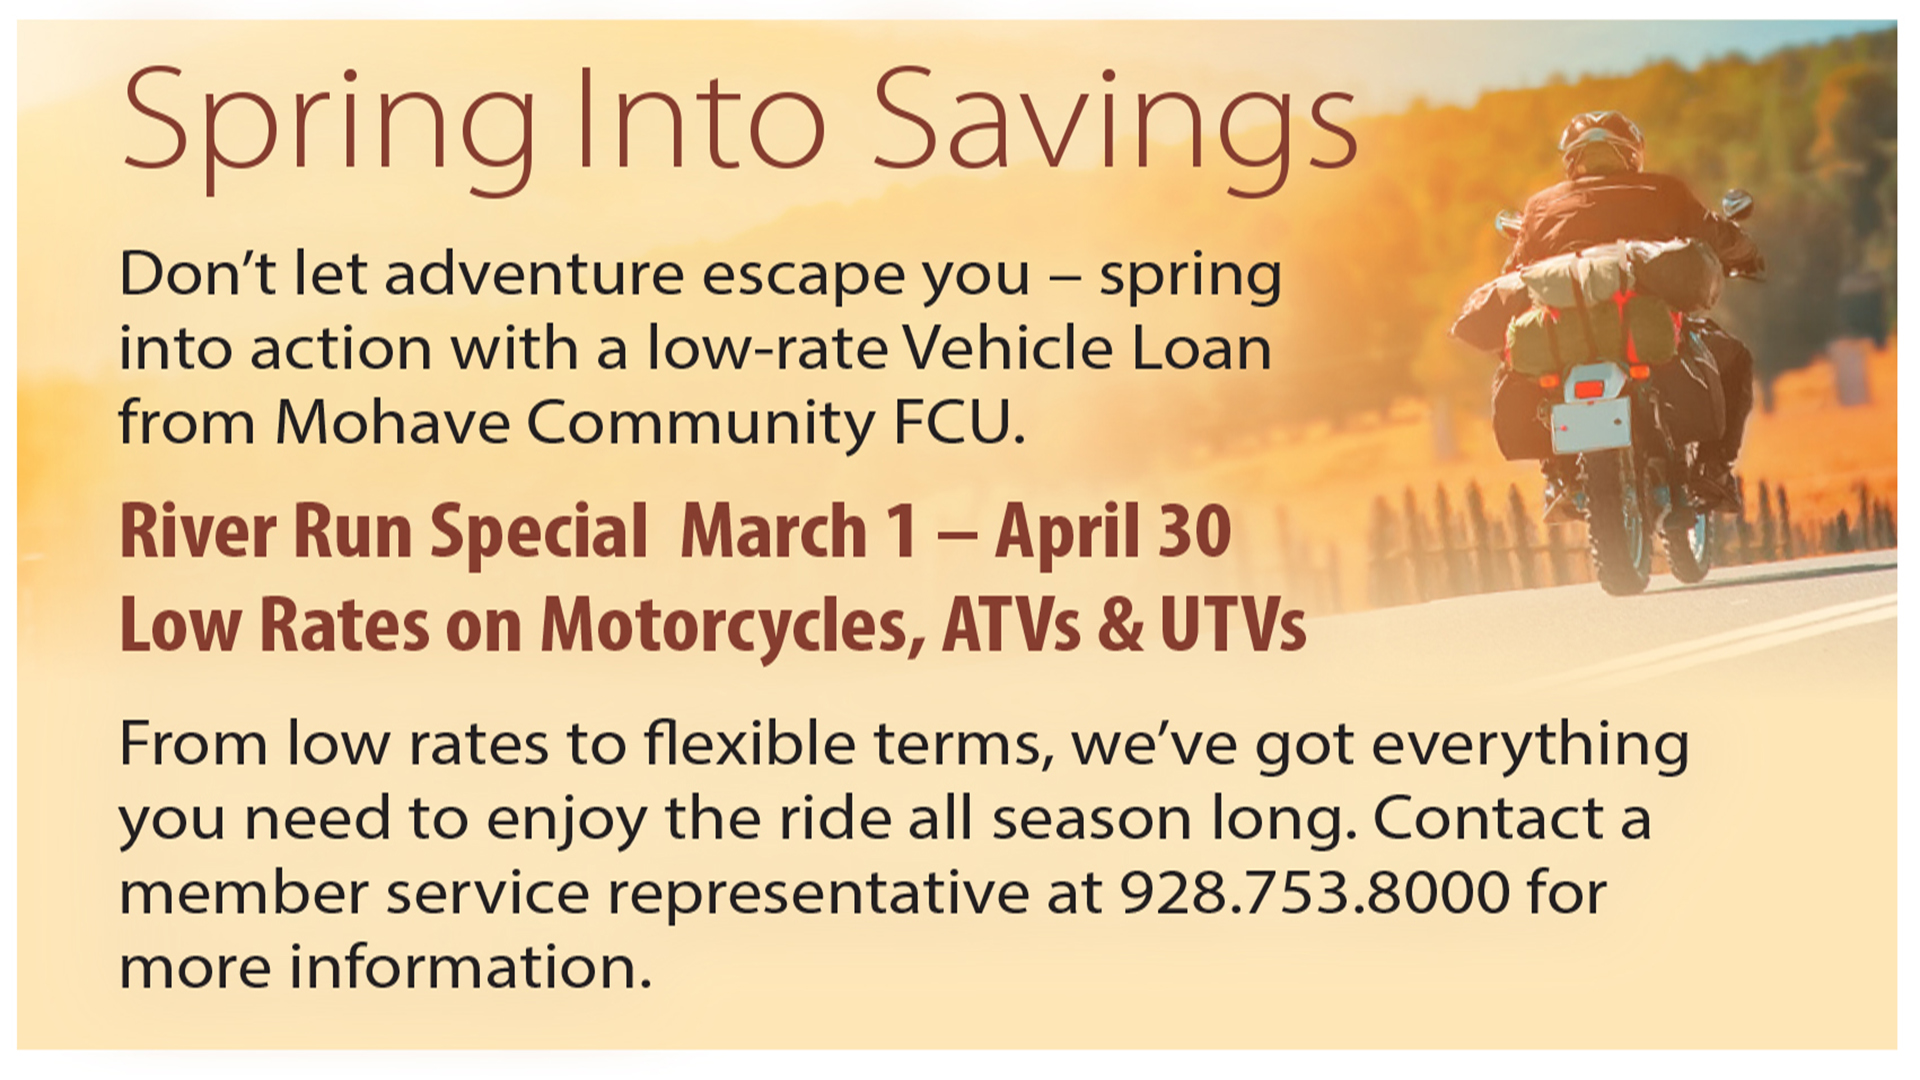 Spring into savings. Low motorcycle rates March 1st through April 30th. Contact Mohave Community Federal Credit Union at 928-753-8000 for more information.